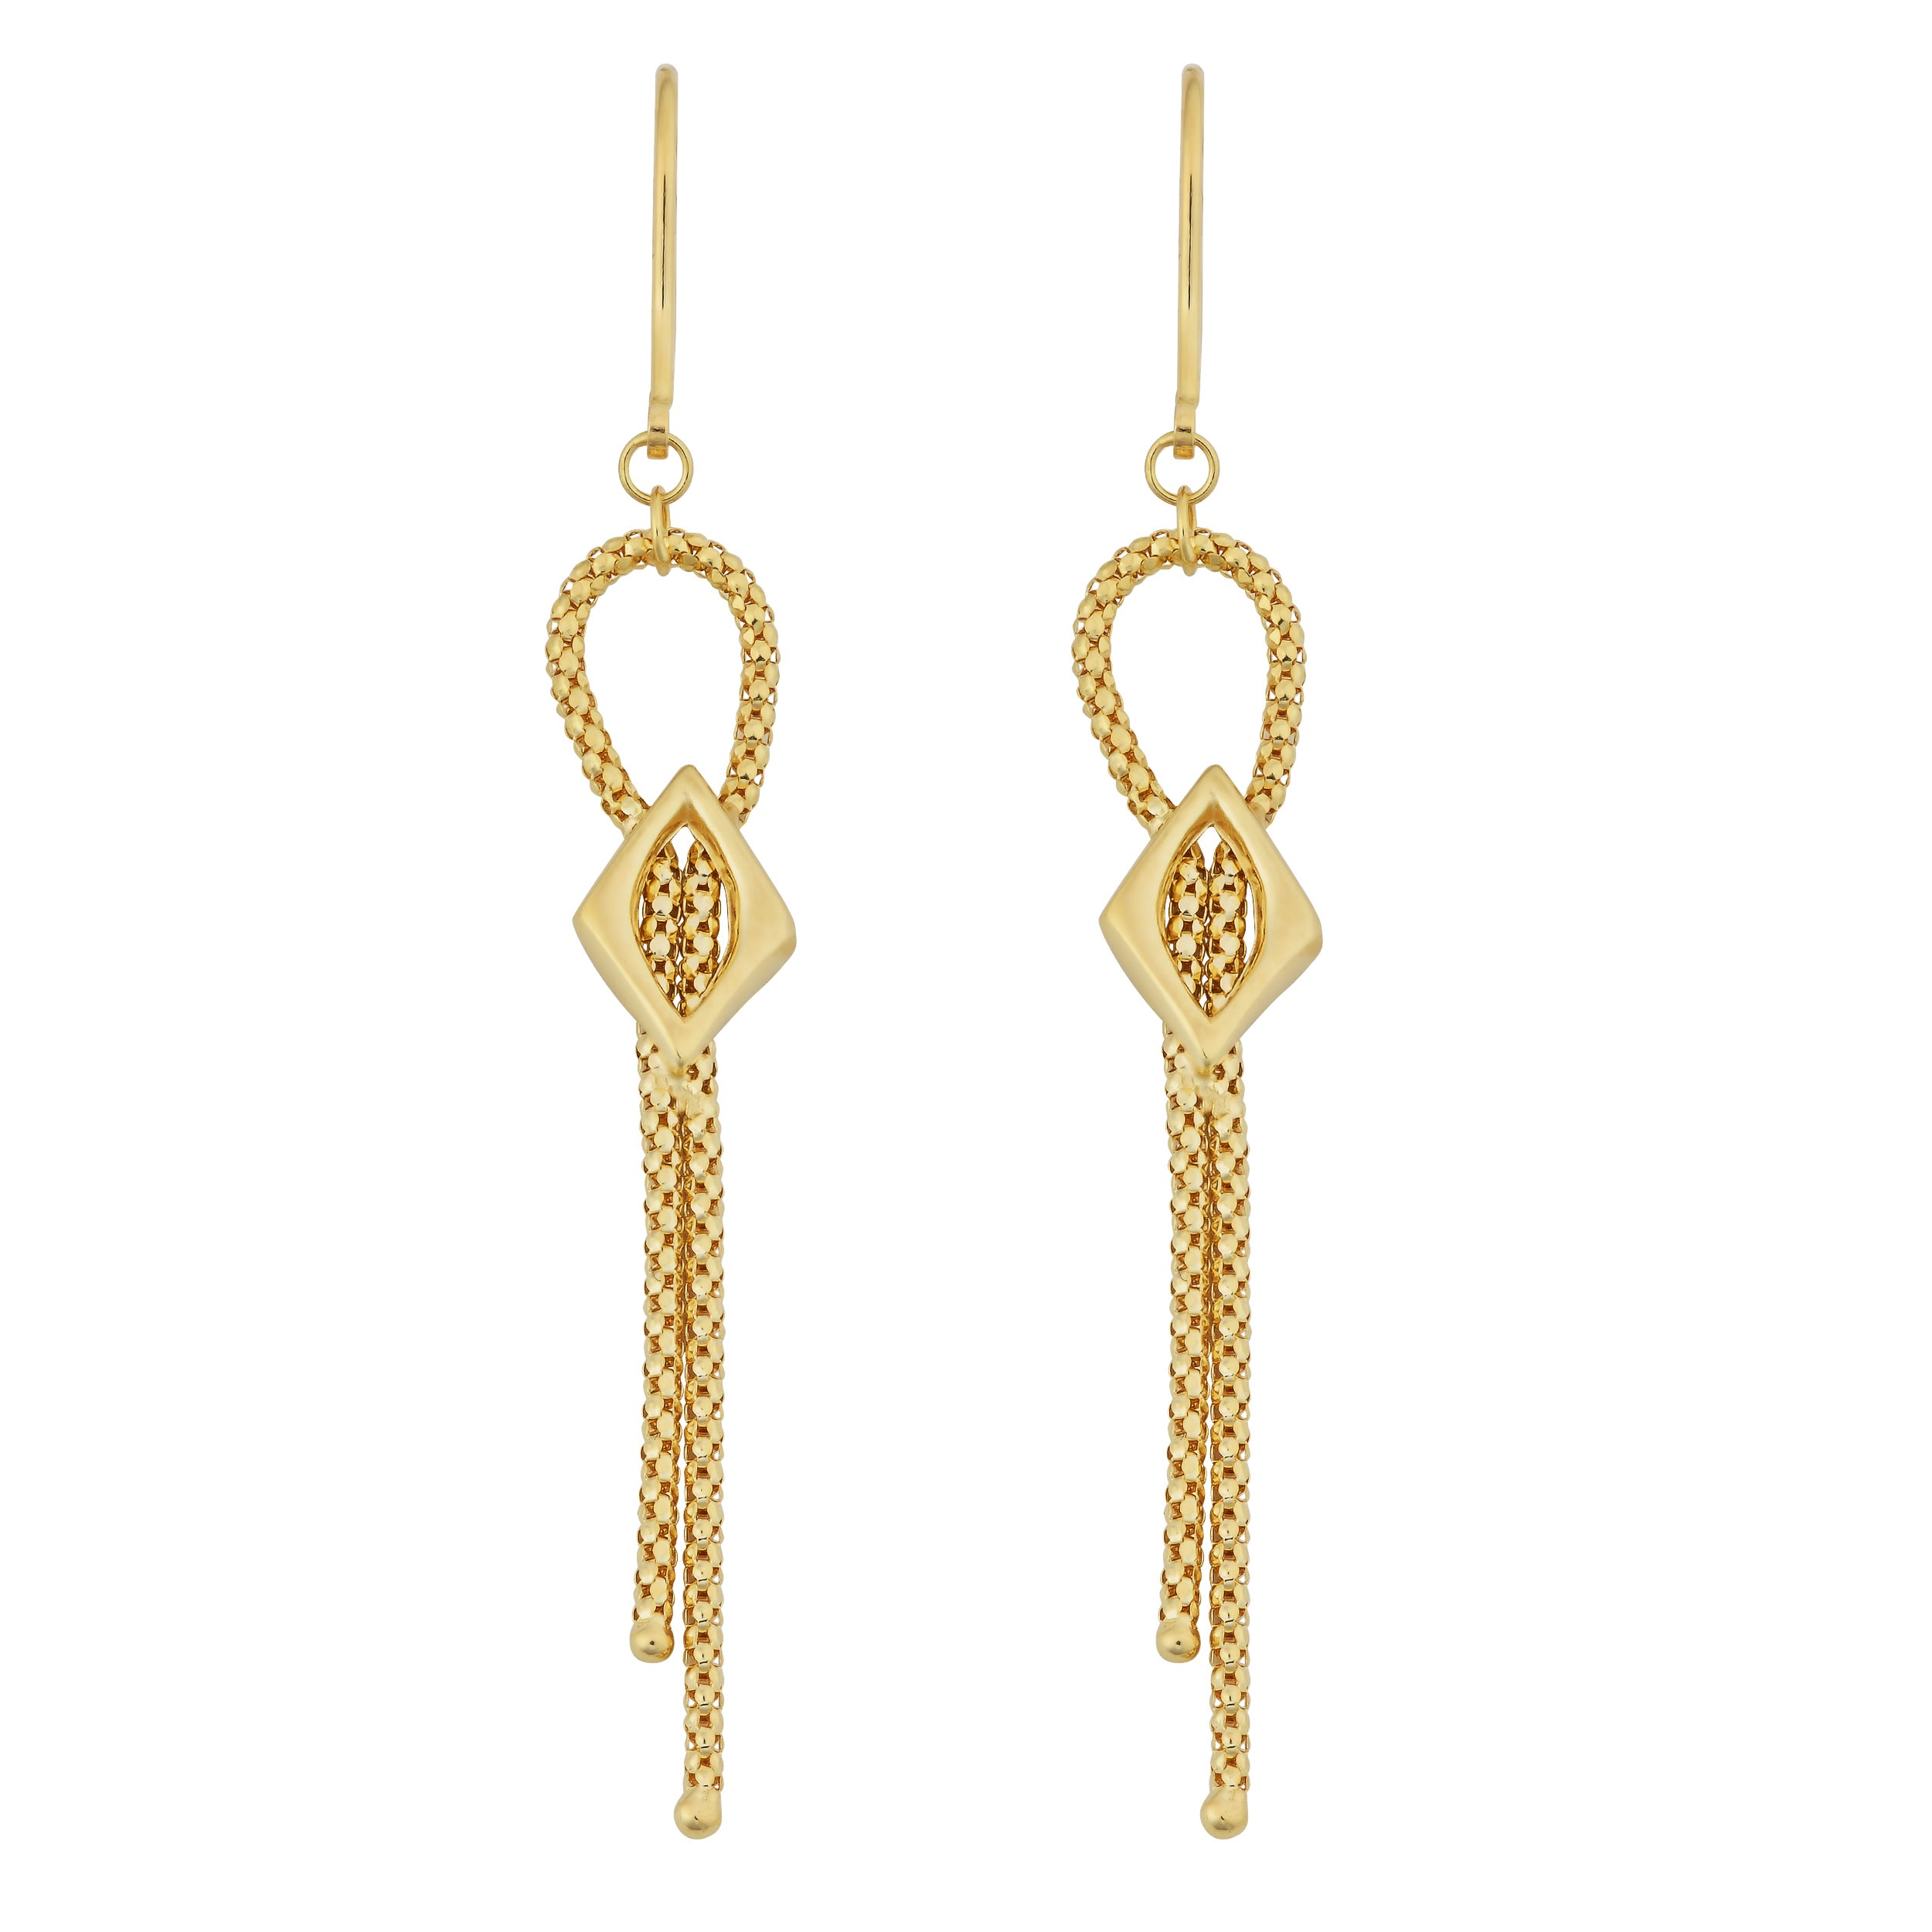 large earrings loading gold operandi italian moda by thick florentine carolina hoop bucci